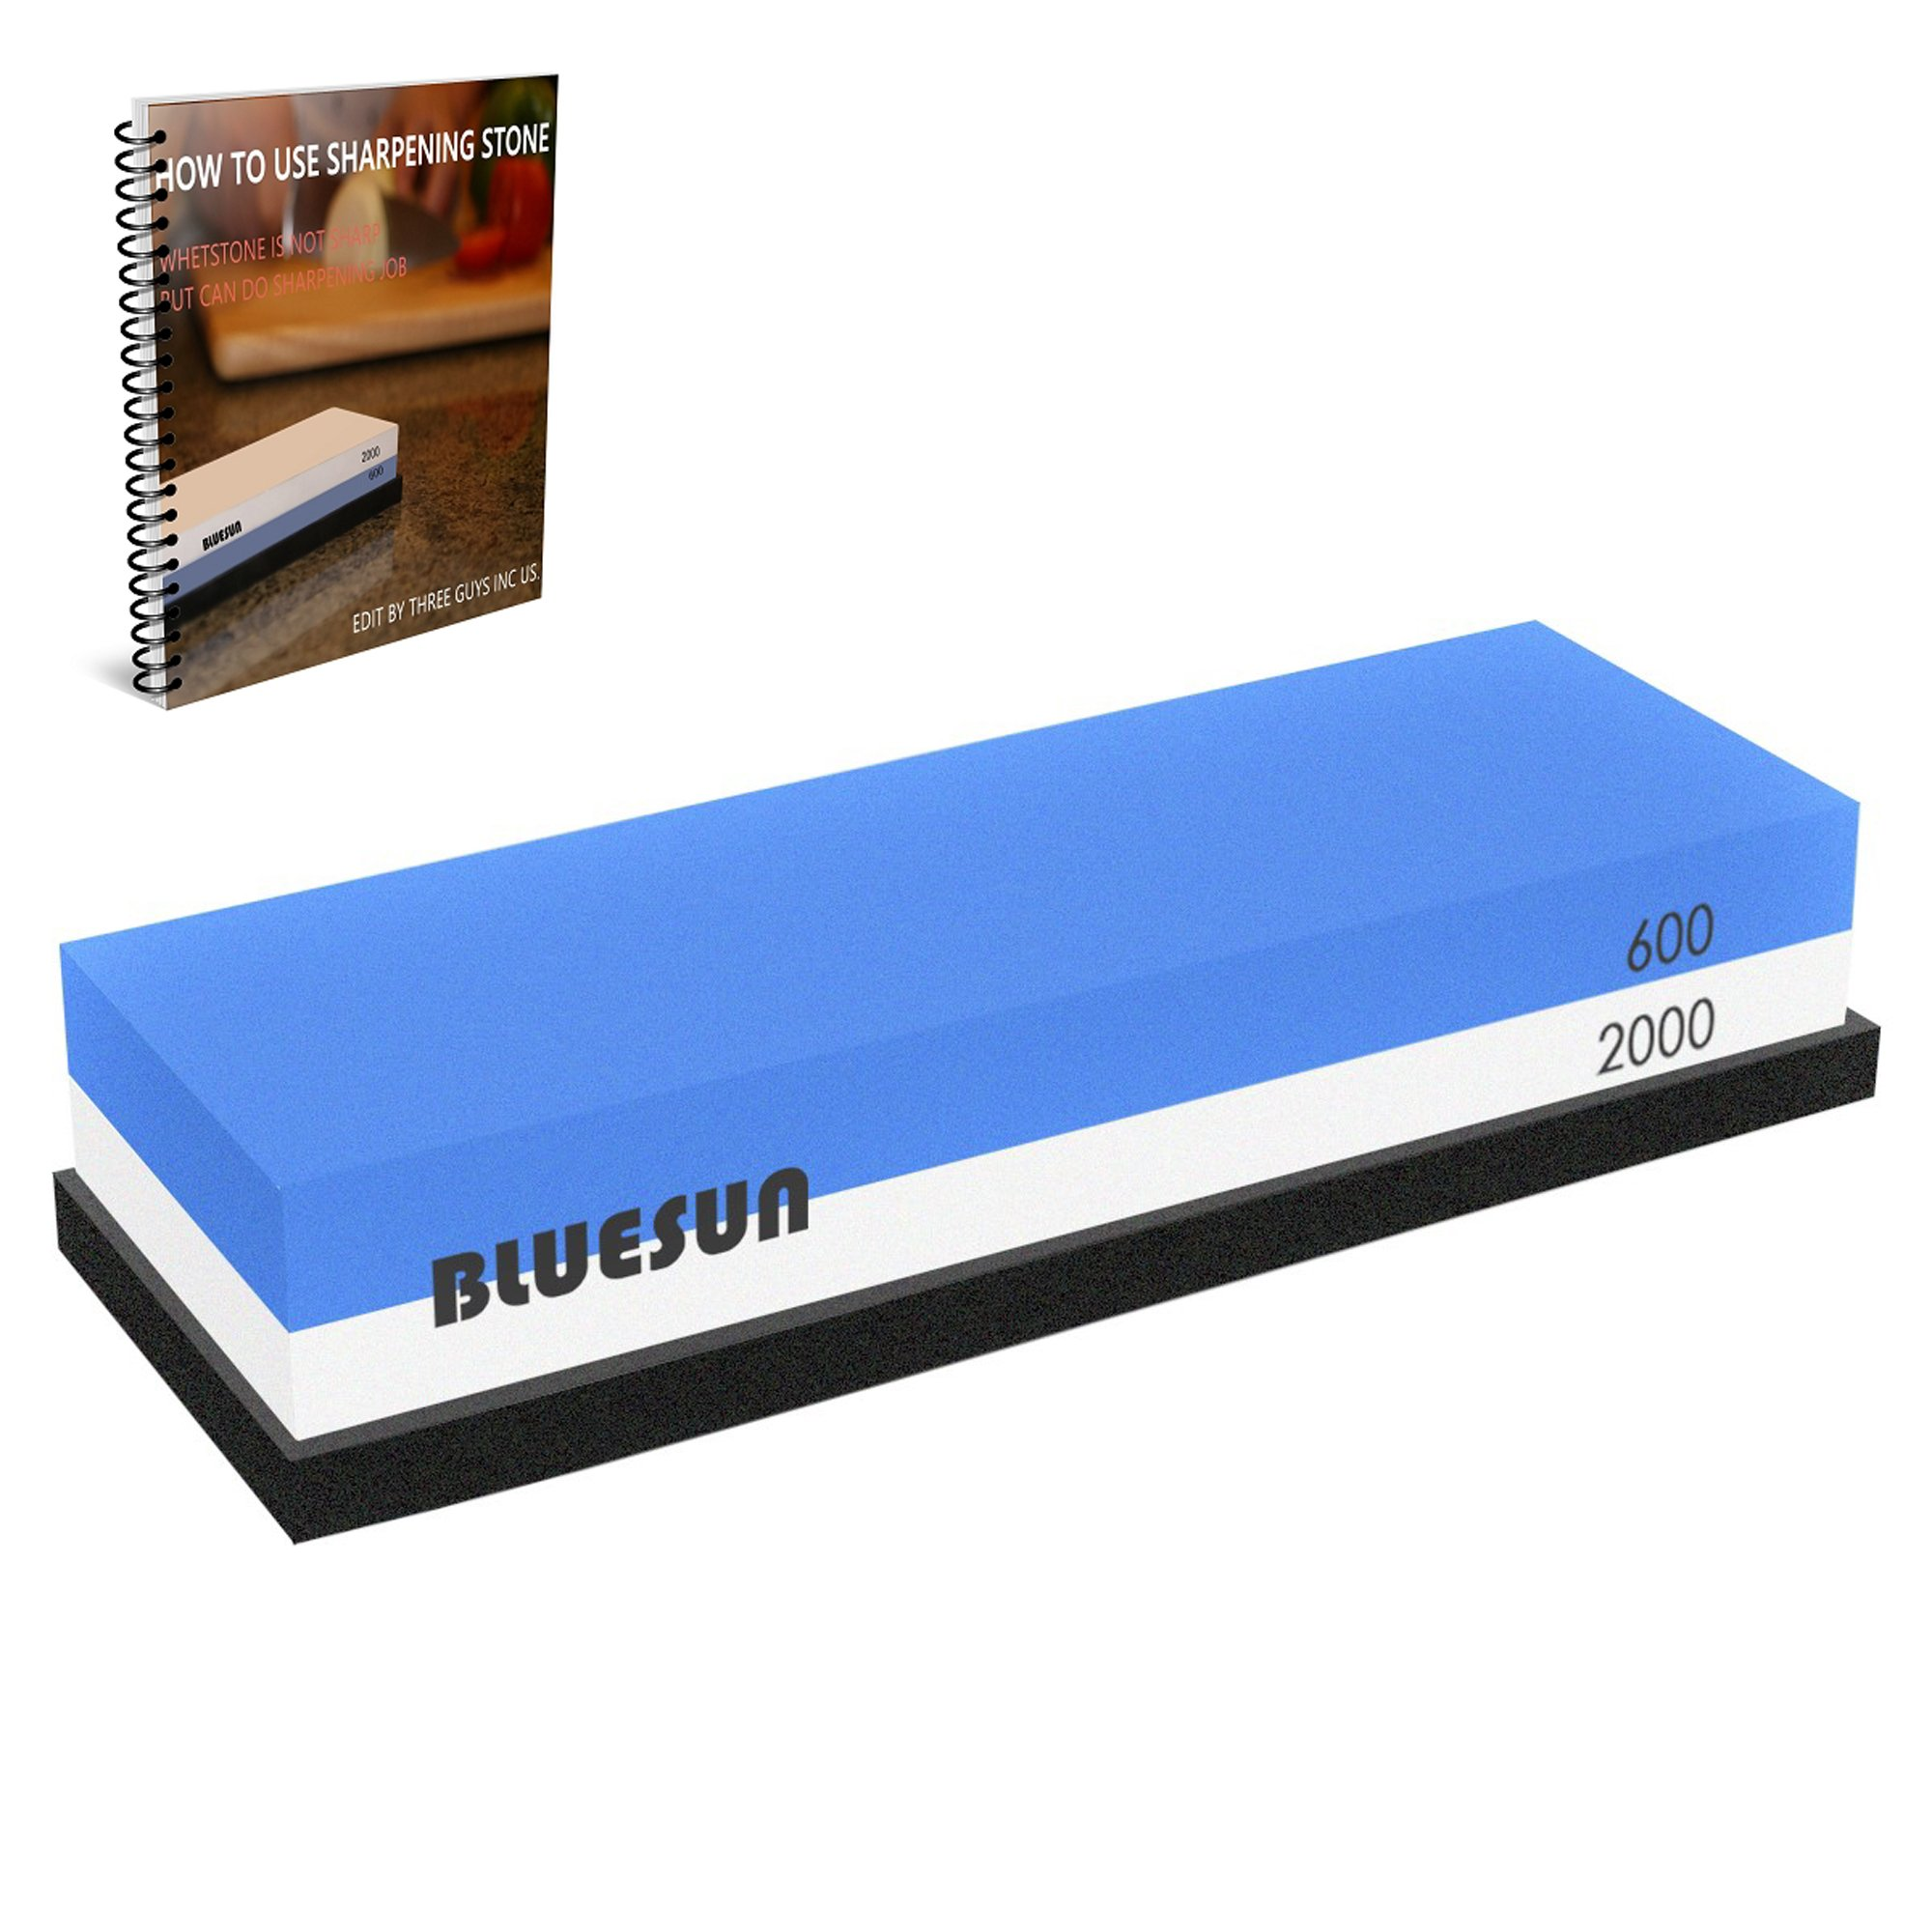 BLUESUN Knife Sharpening Sharpener Stone Whetstone Waterstone 600 2000 Grit, Silicon Non Slip Base and Ebook Included For Kitchen Knives, Tactical Knives, Scissors, Razors, Swords